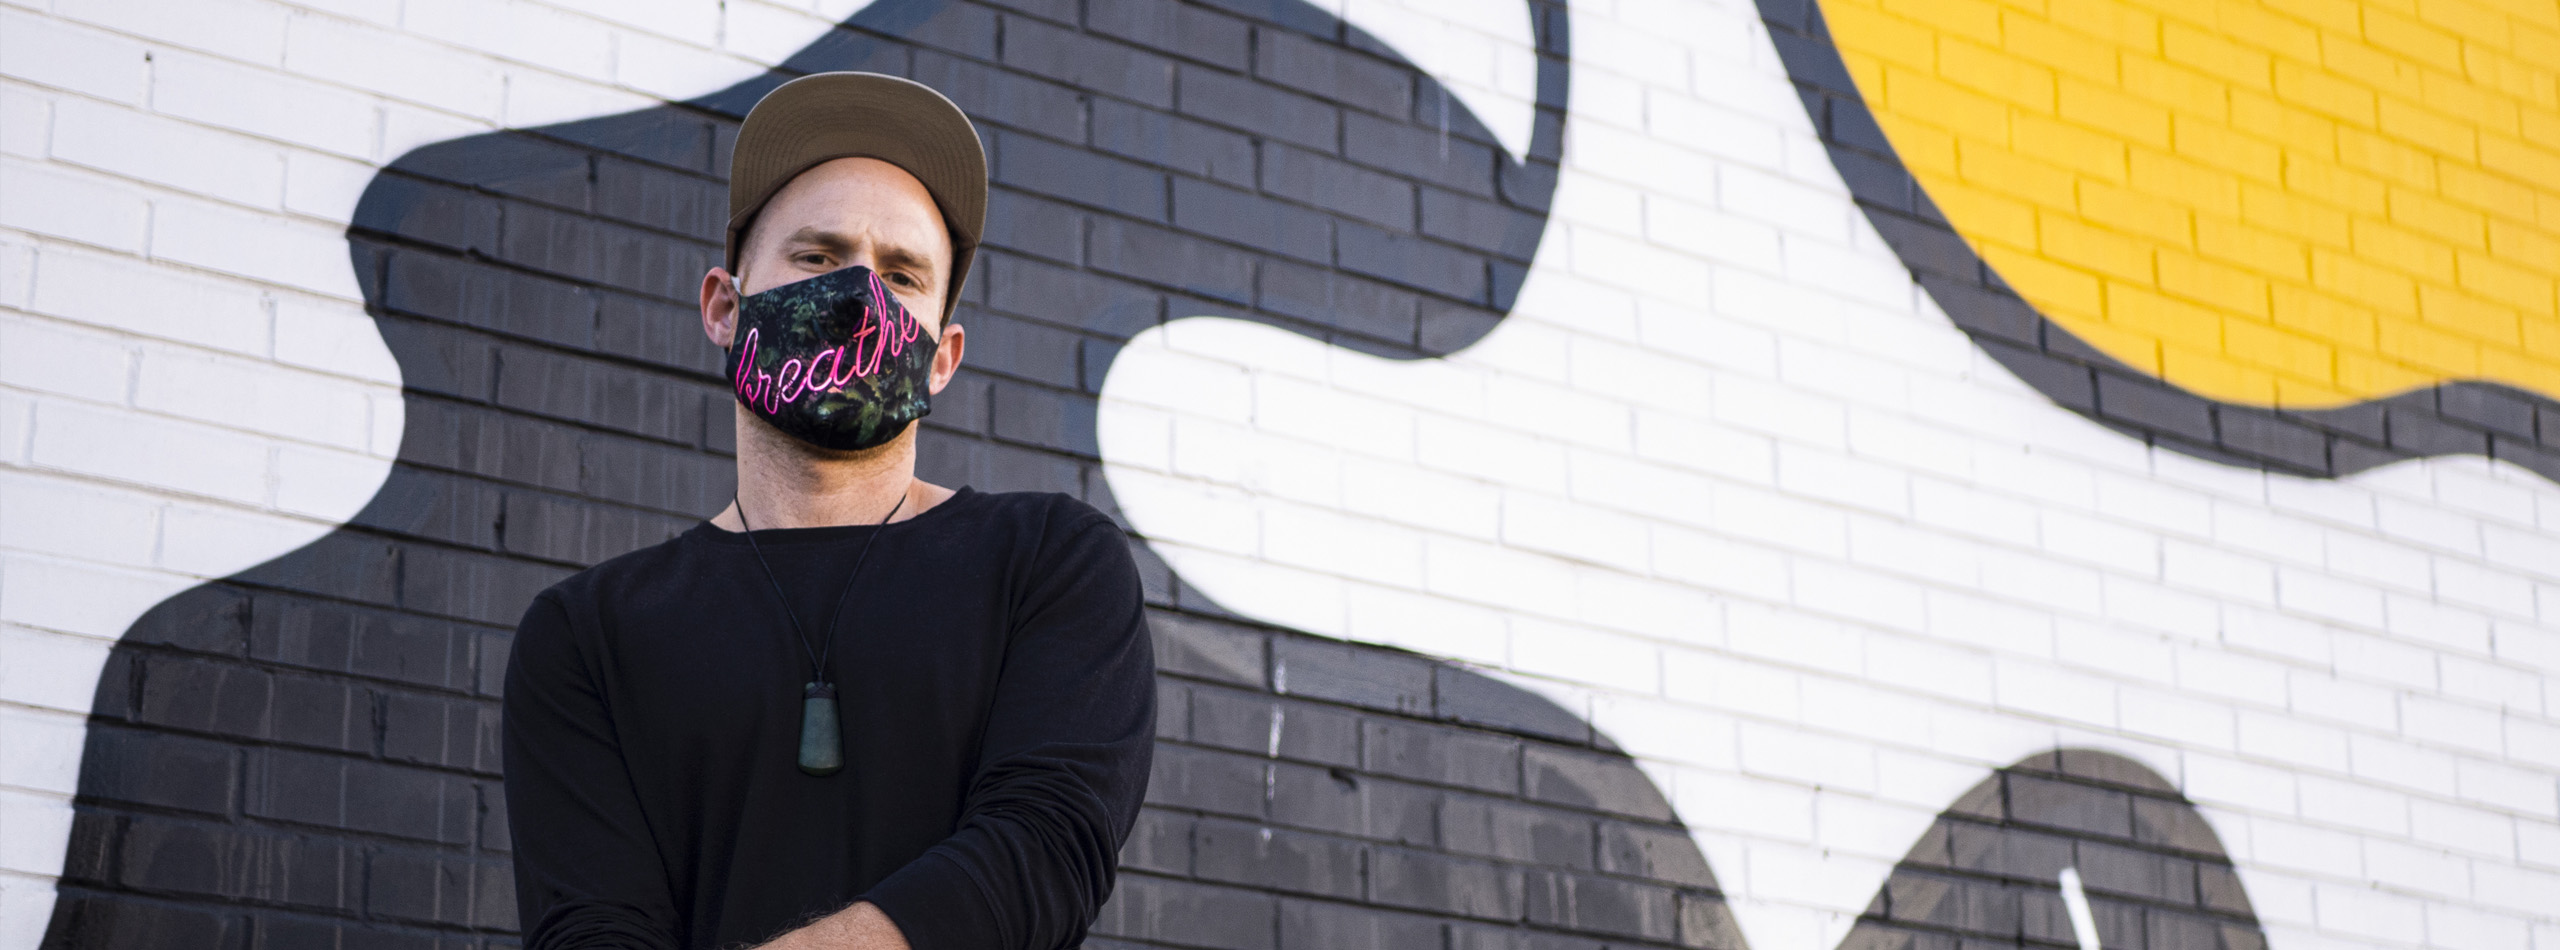 Man with custom printed face covering in front of brick wall